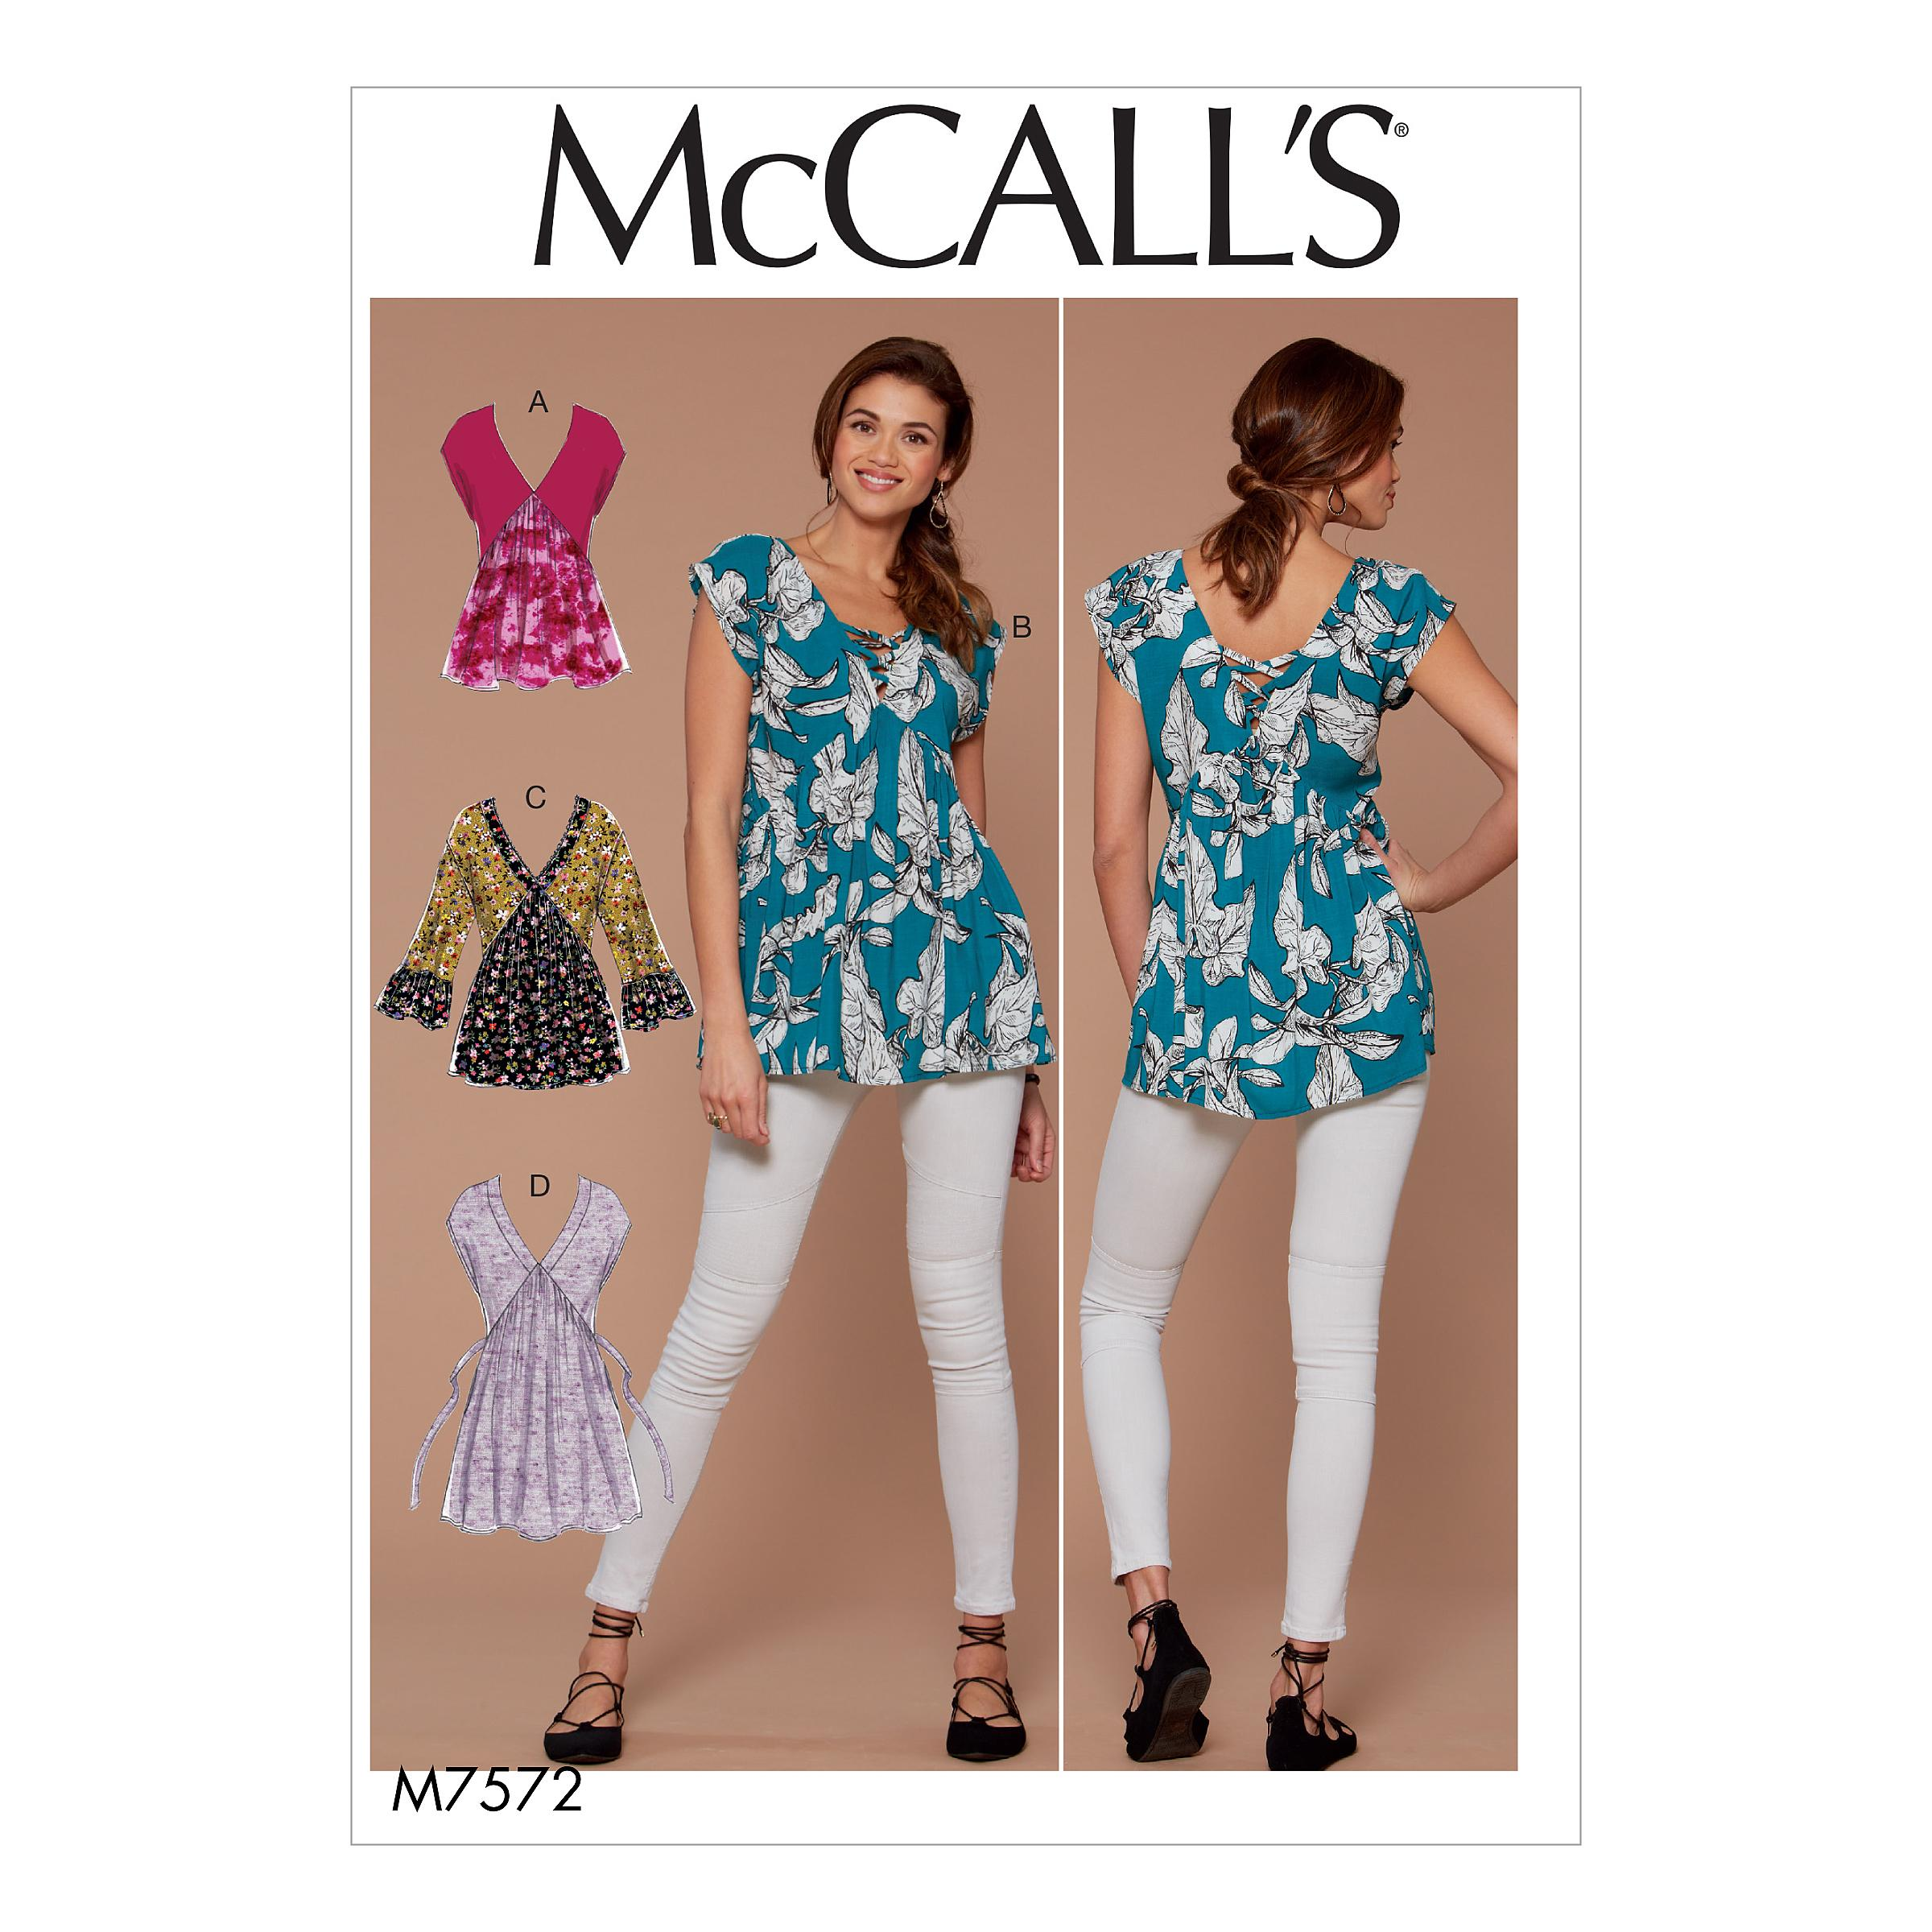 McCalls M7572 Misses Tops